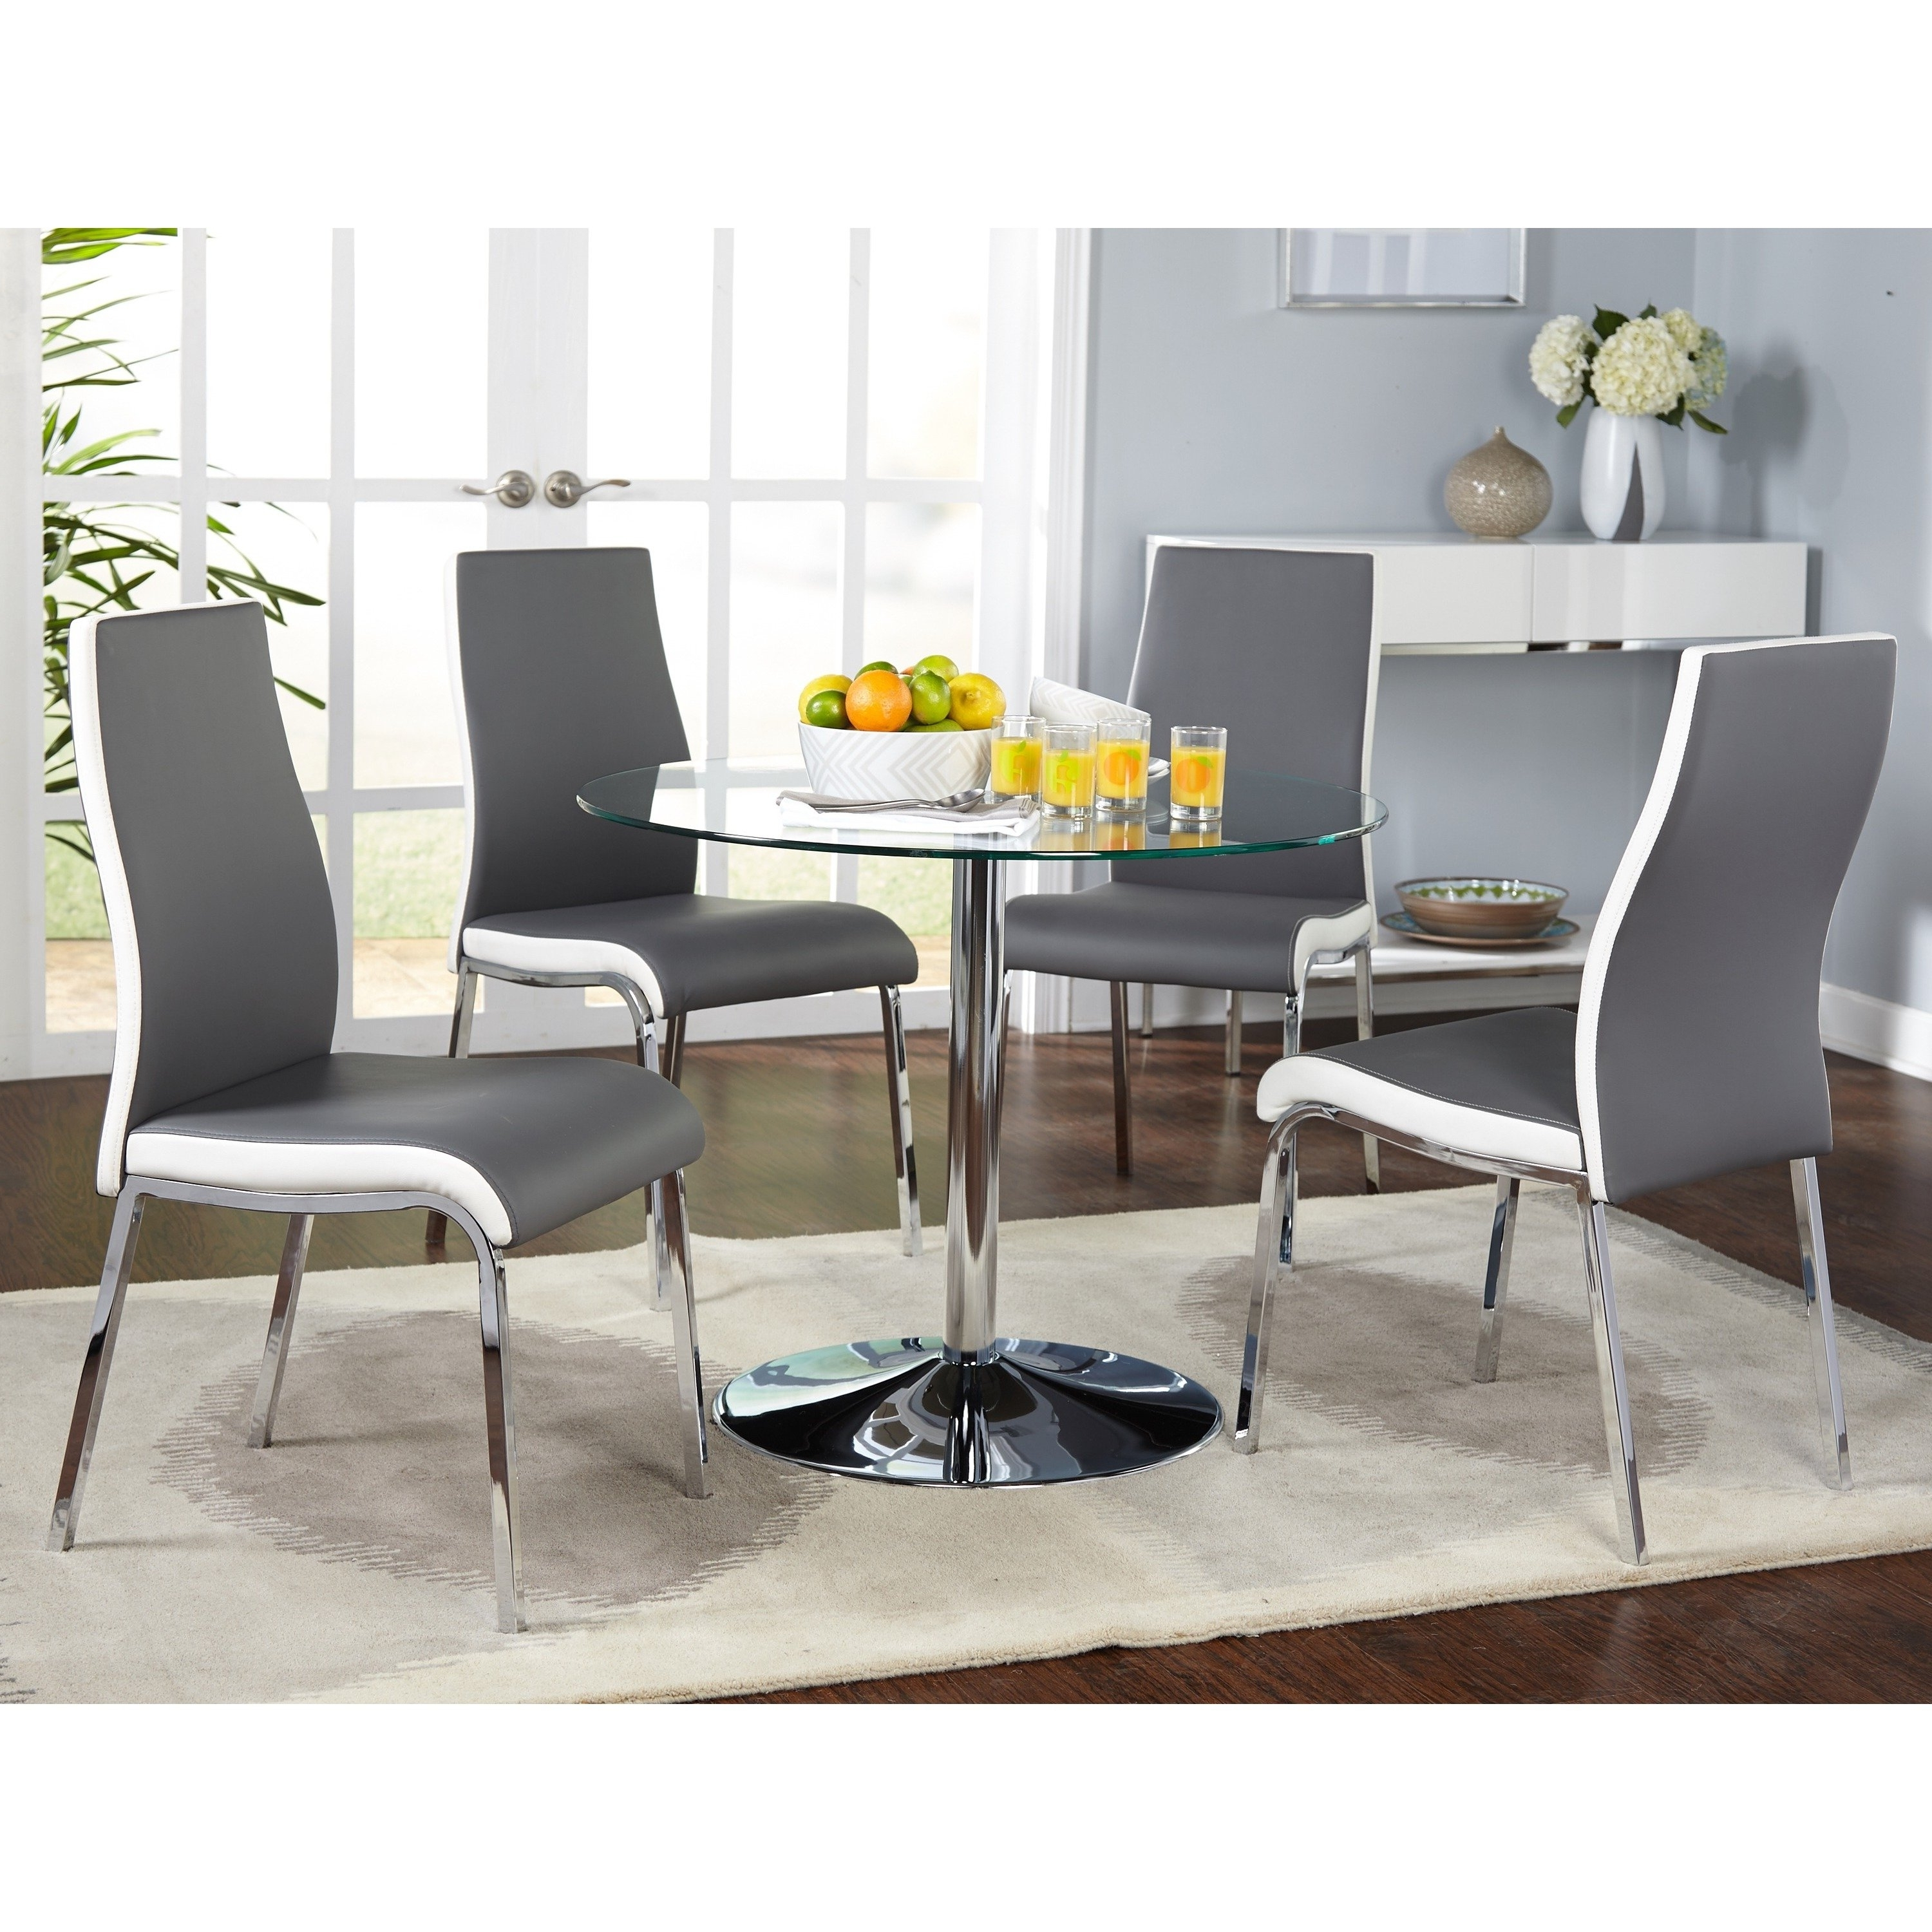 Nora Dining Tables For Favorite Shop Simple Living Nora Modern Dining Room Set – Free Shipping Today (View 14 of 25)